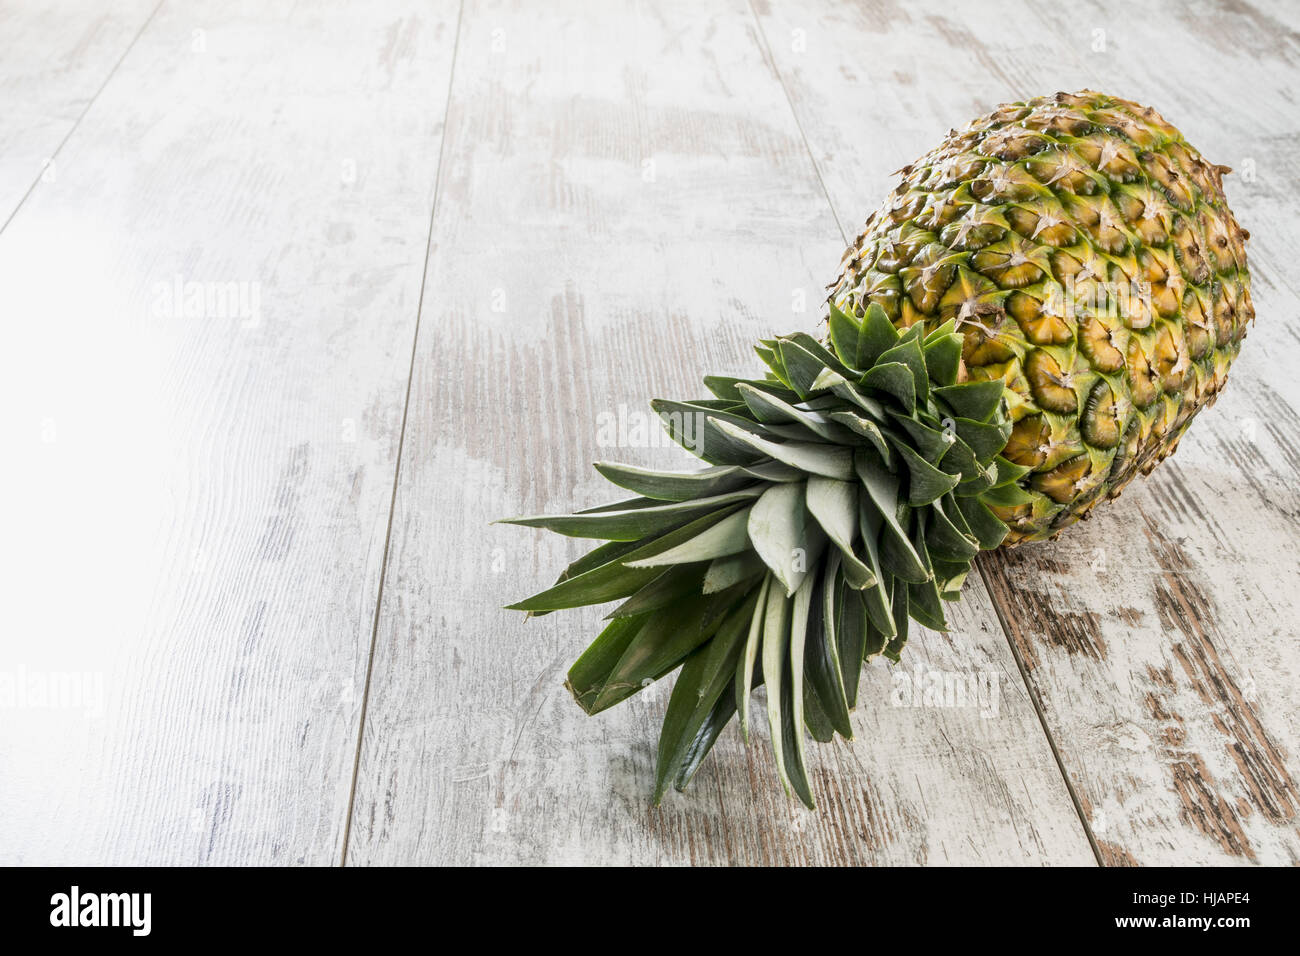 pineapple lying on the right - Stock Image